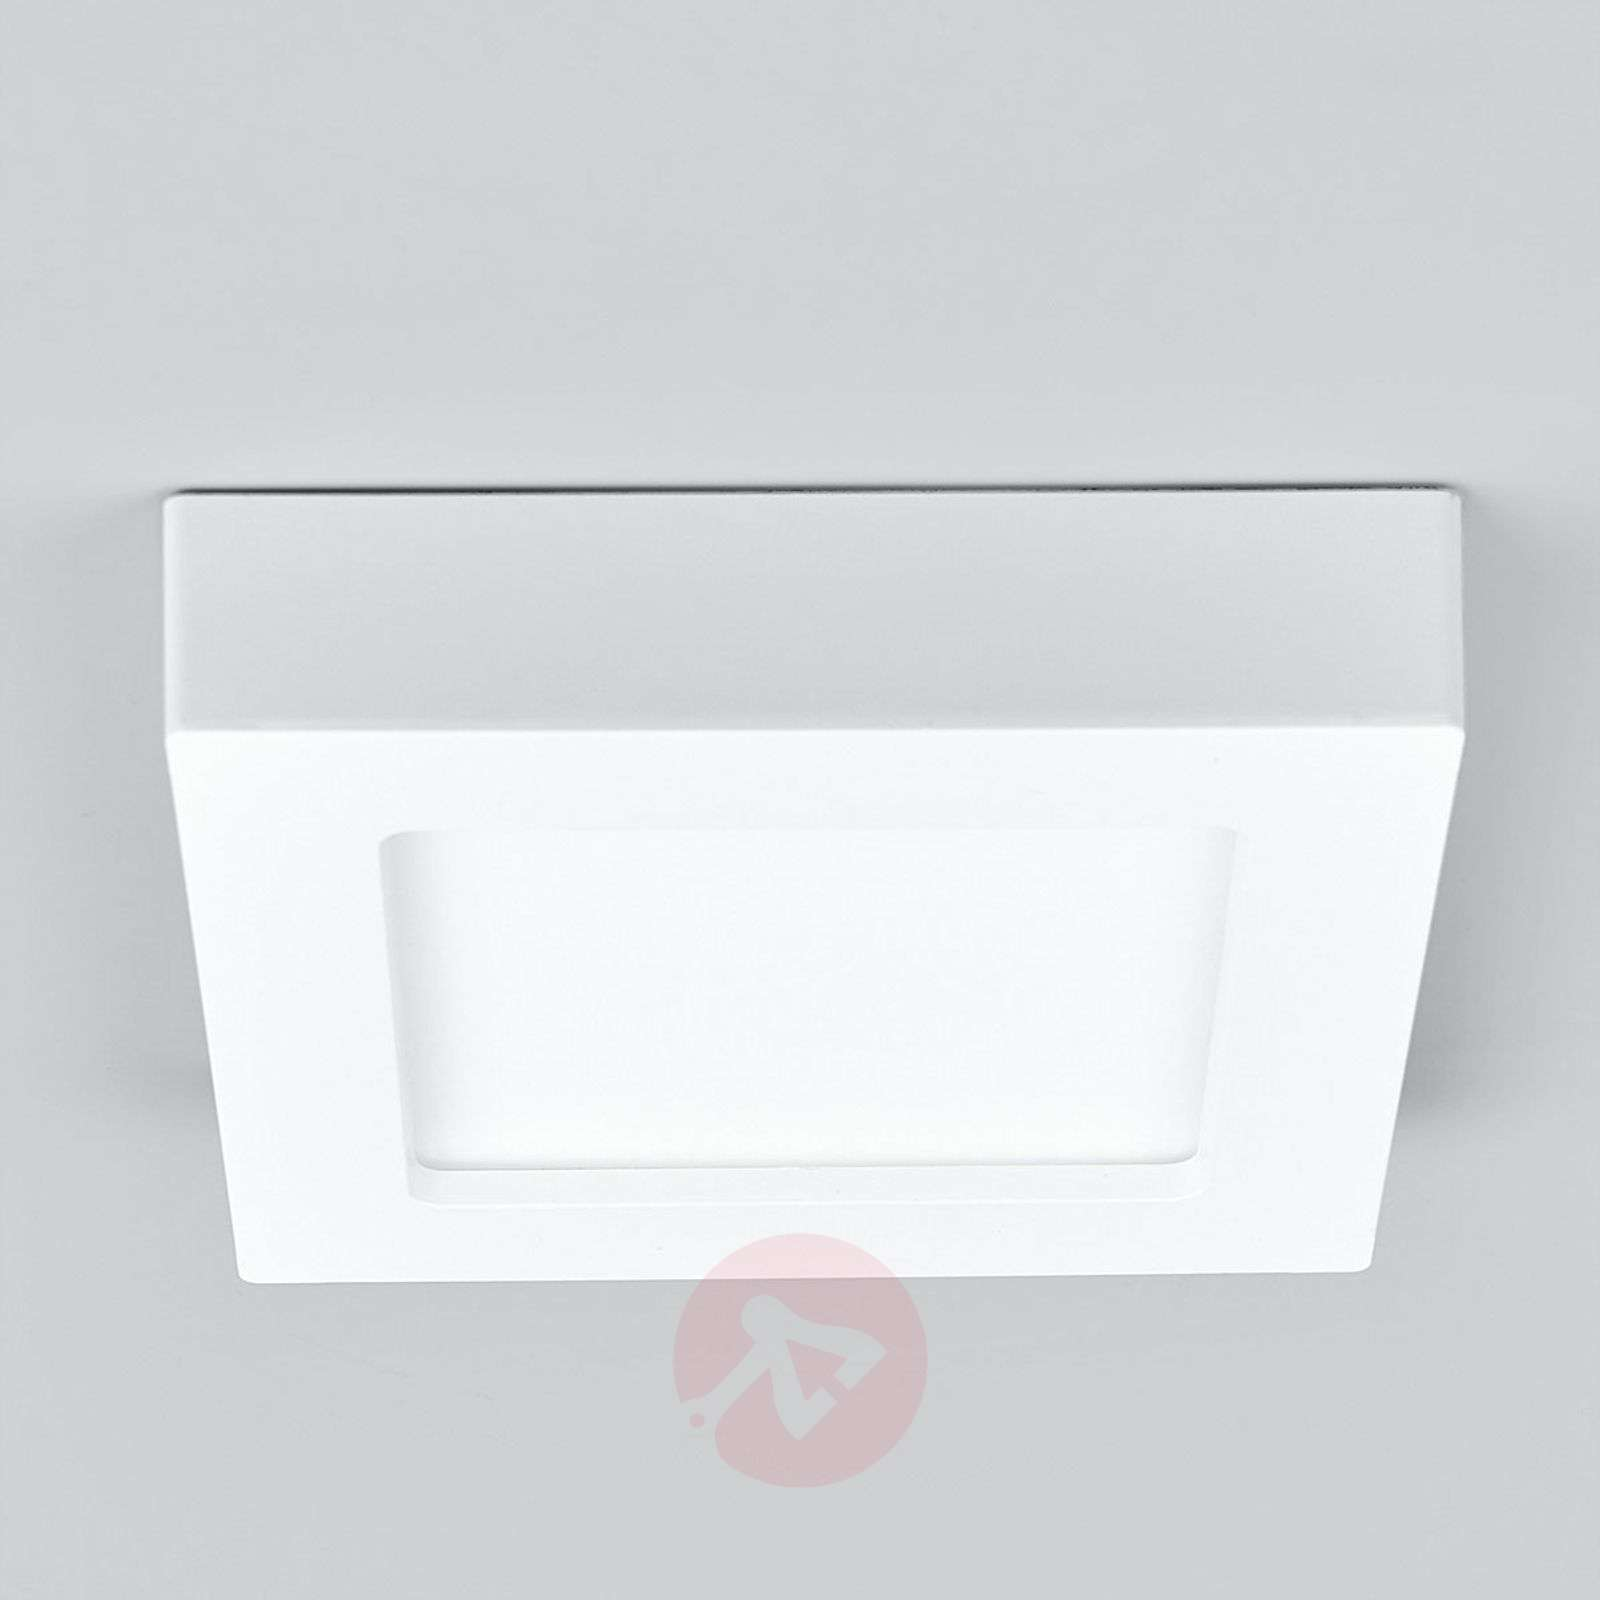 Bathroom ceiling light Rayan with LED-9978023-011